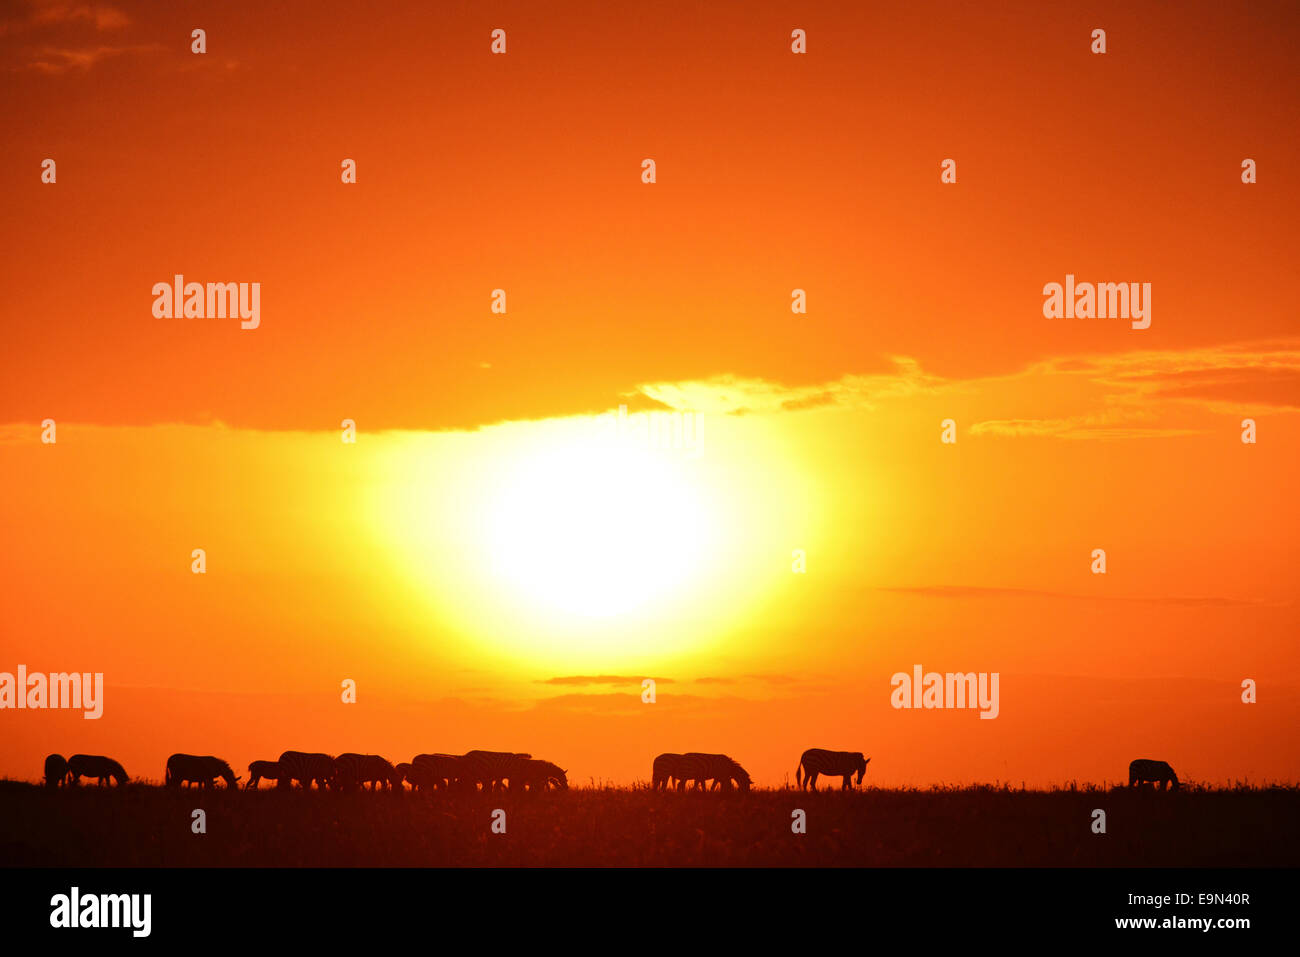 Masai Mara Sunrise - Stock Image